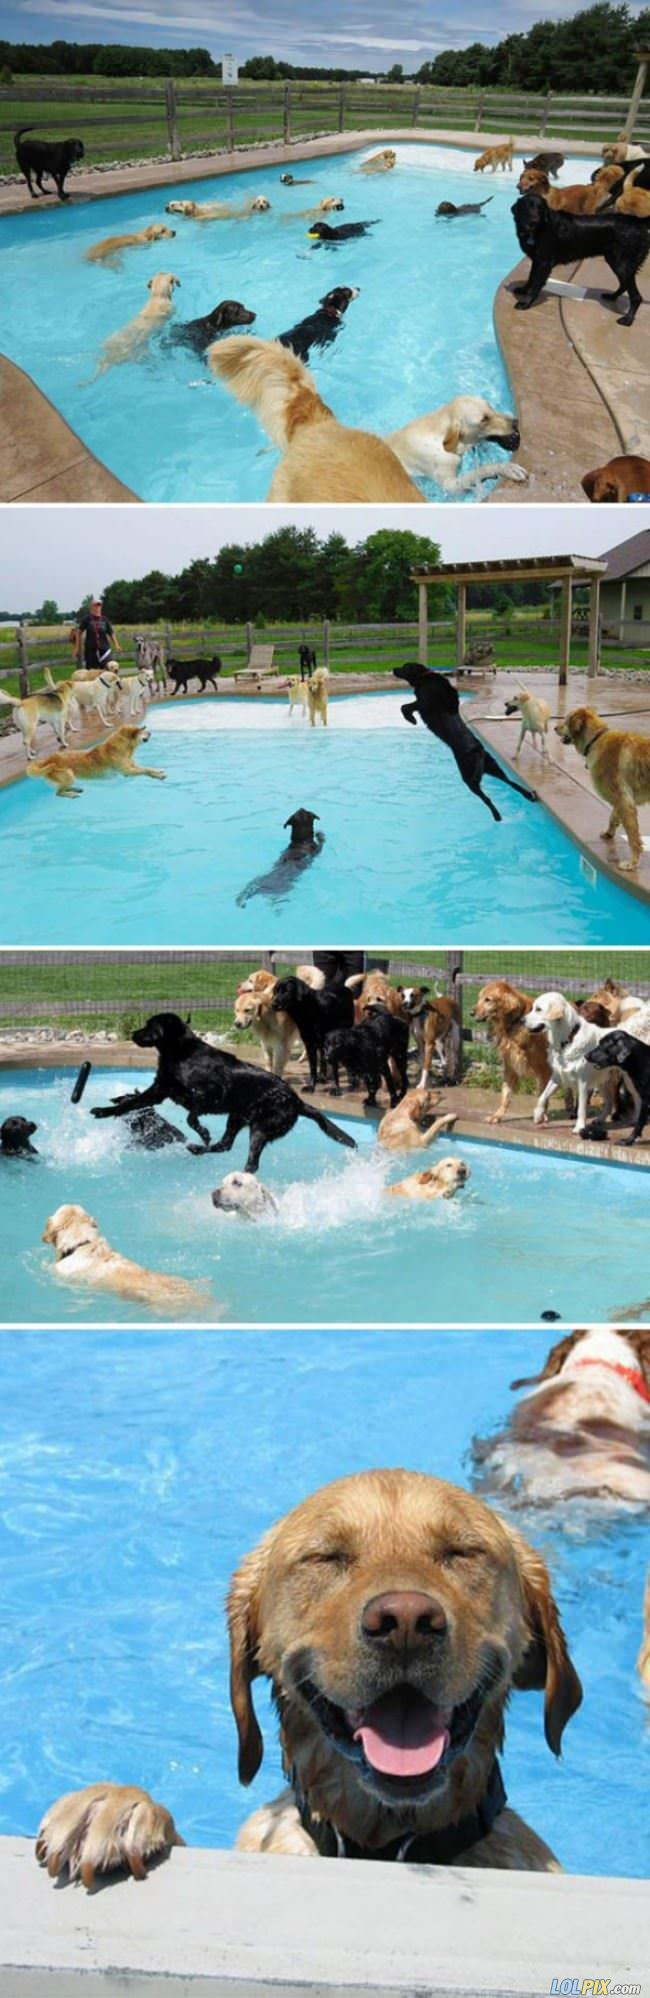 the dog pool